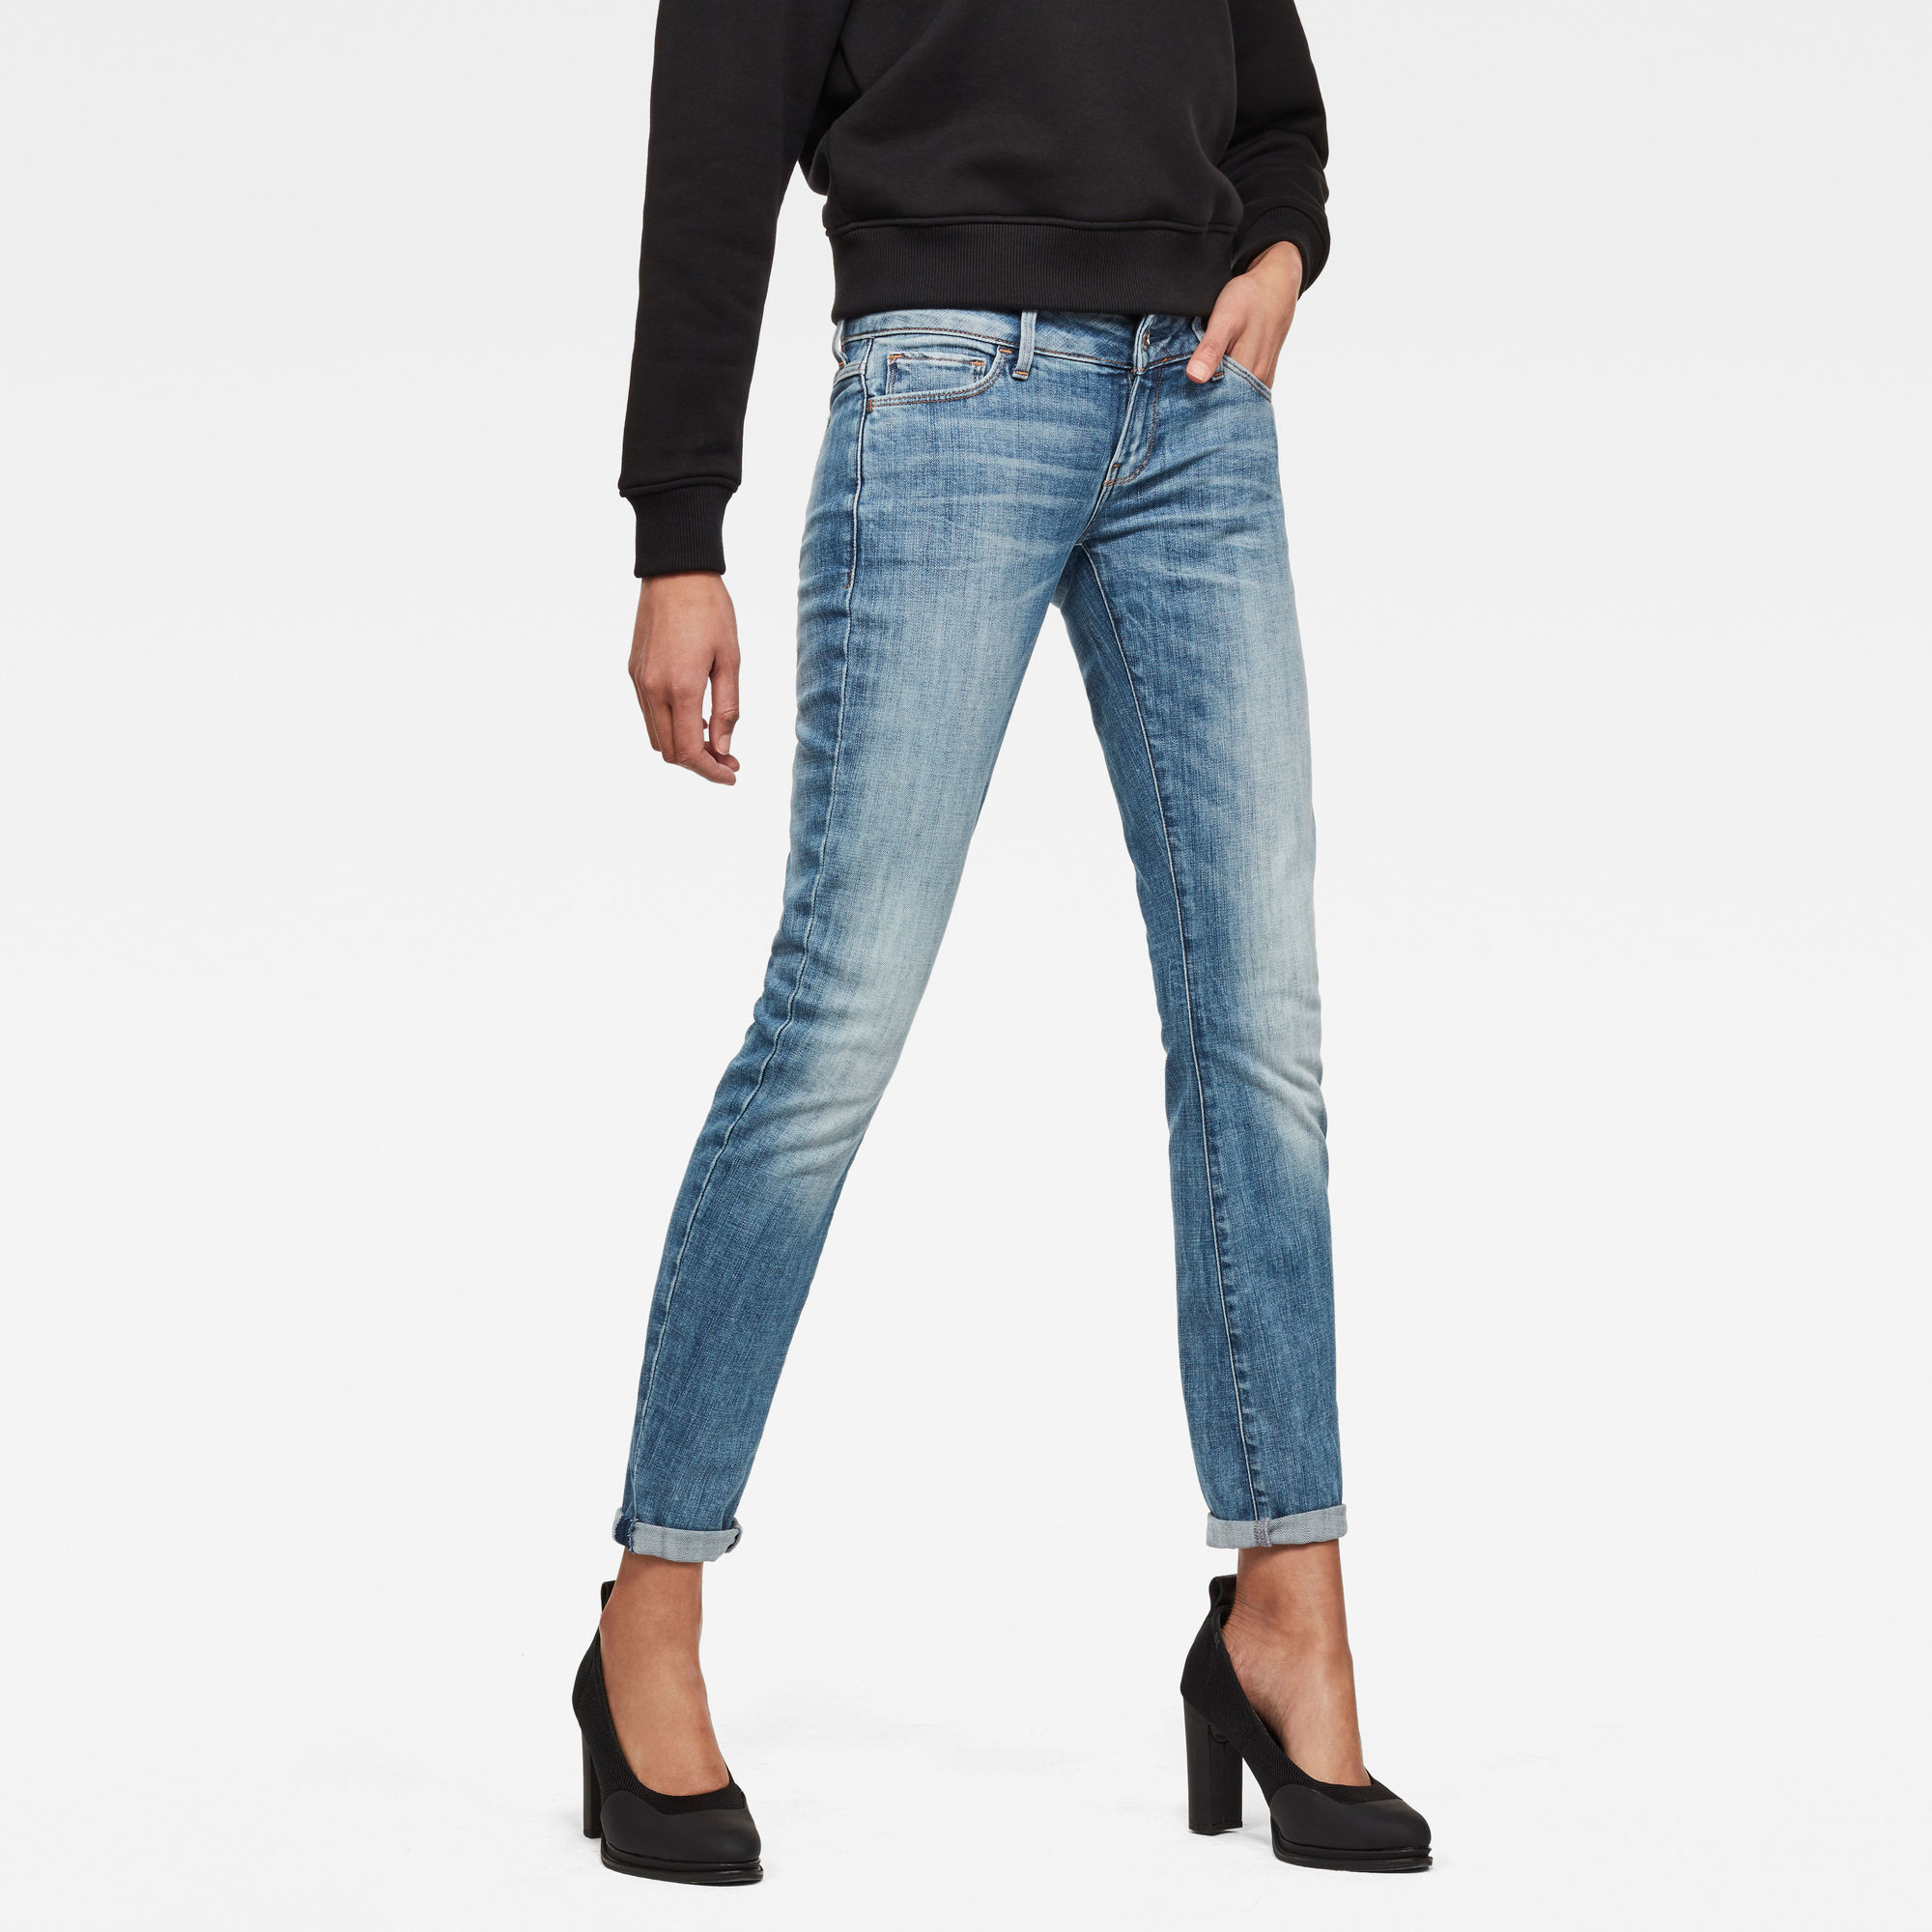 Image of G Star Raw 3301 Deconstructed Low Waist Skinny Jeans